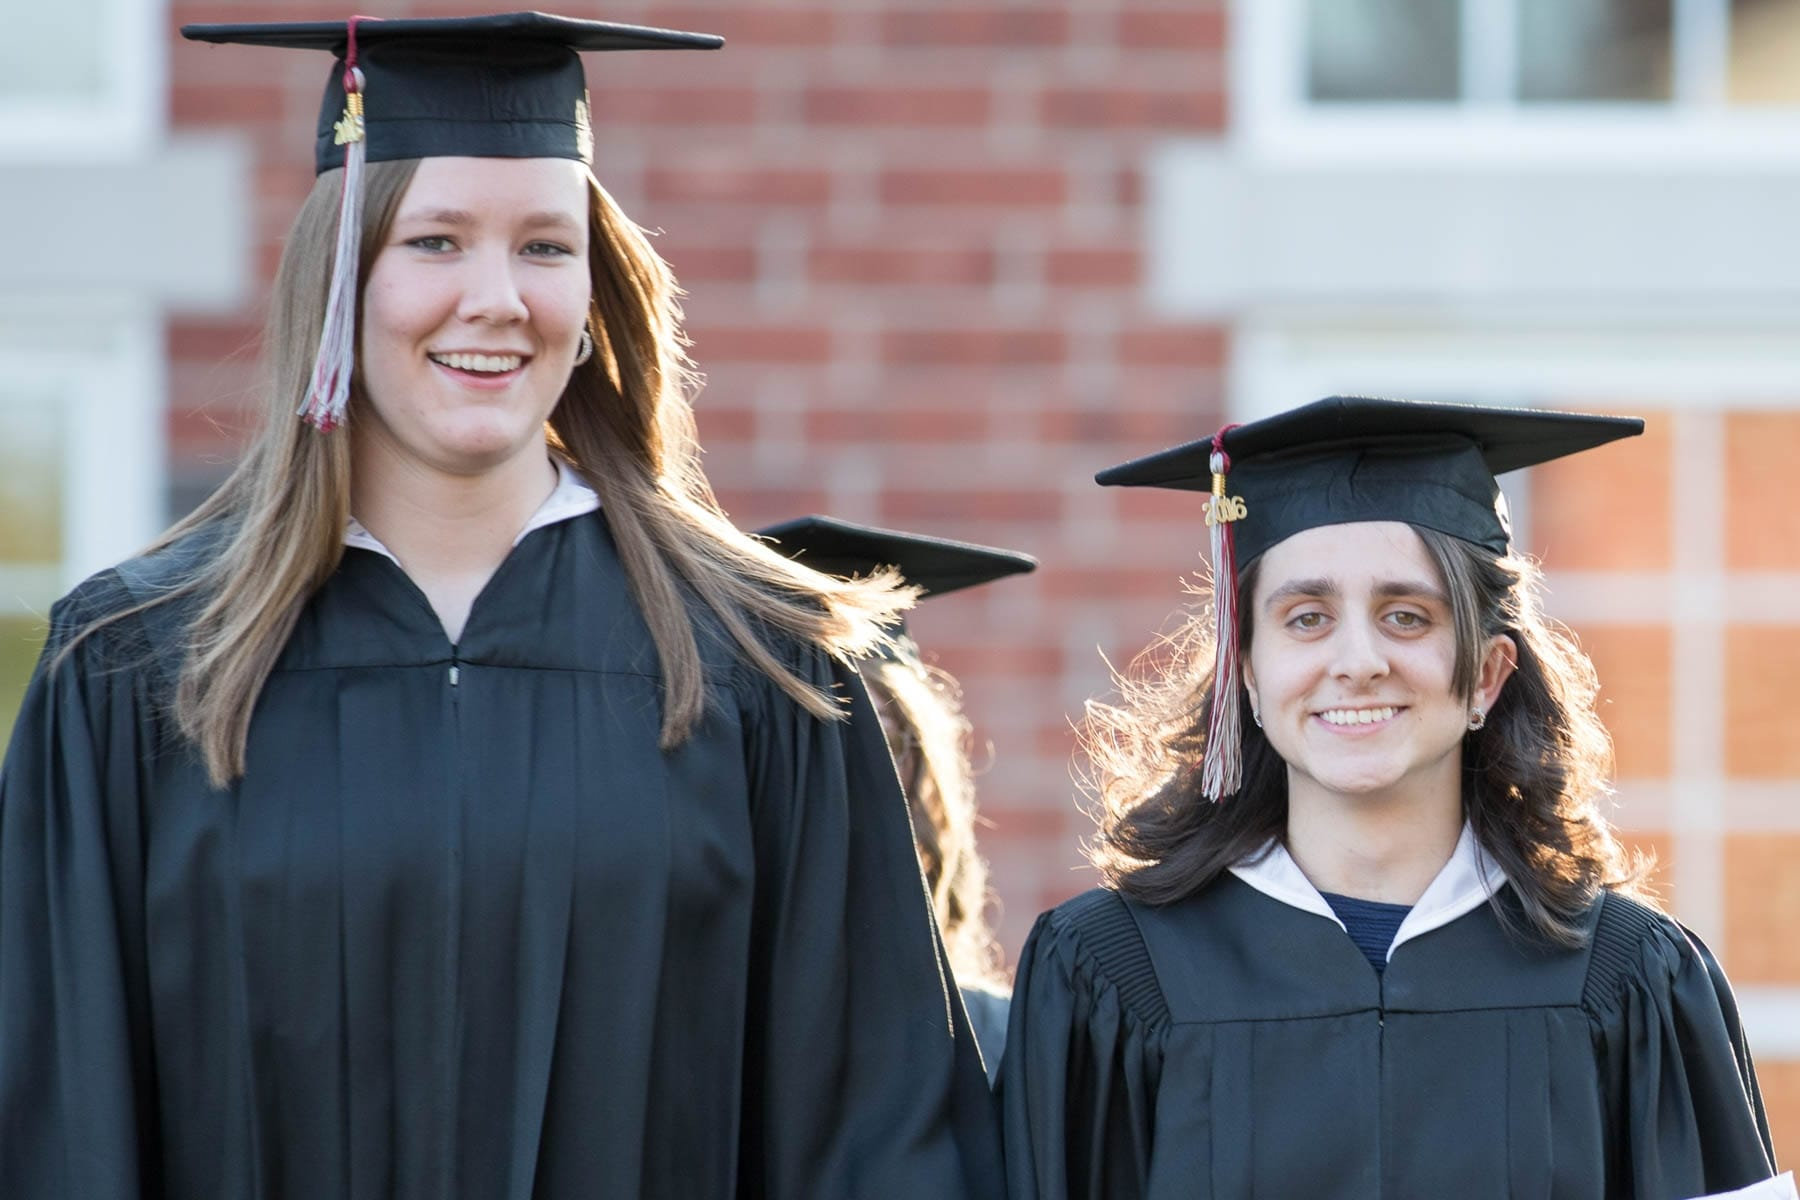 Fairhaven Baptist College and Academy Graduation 2016 (37 of 37)